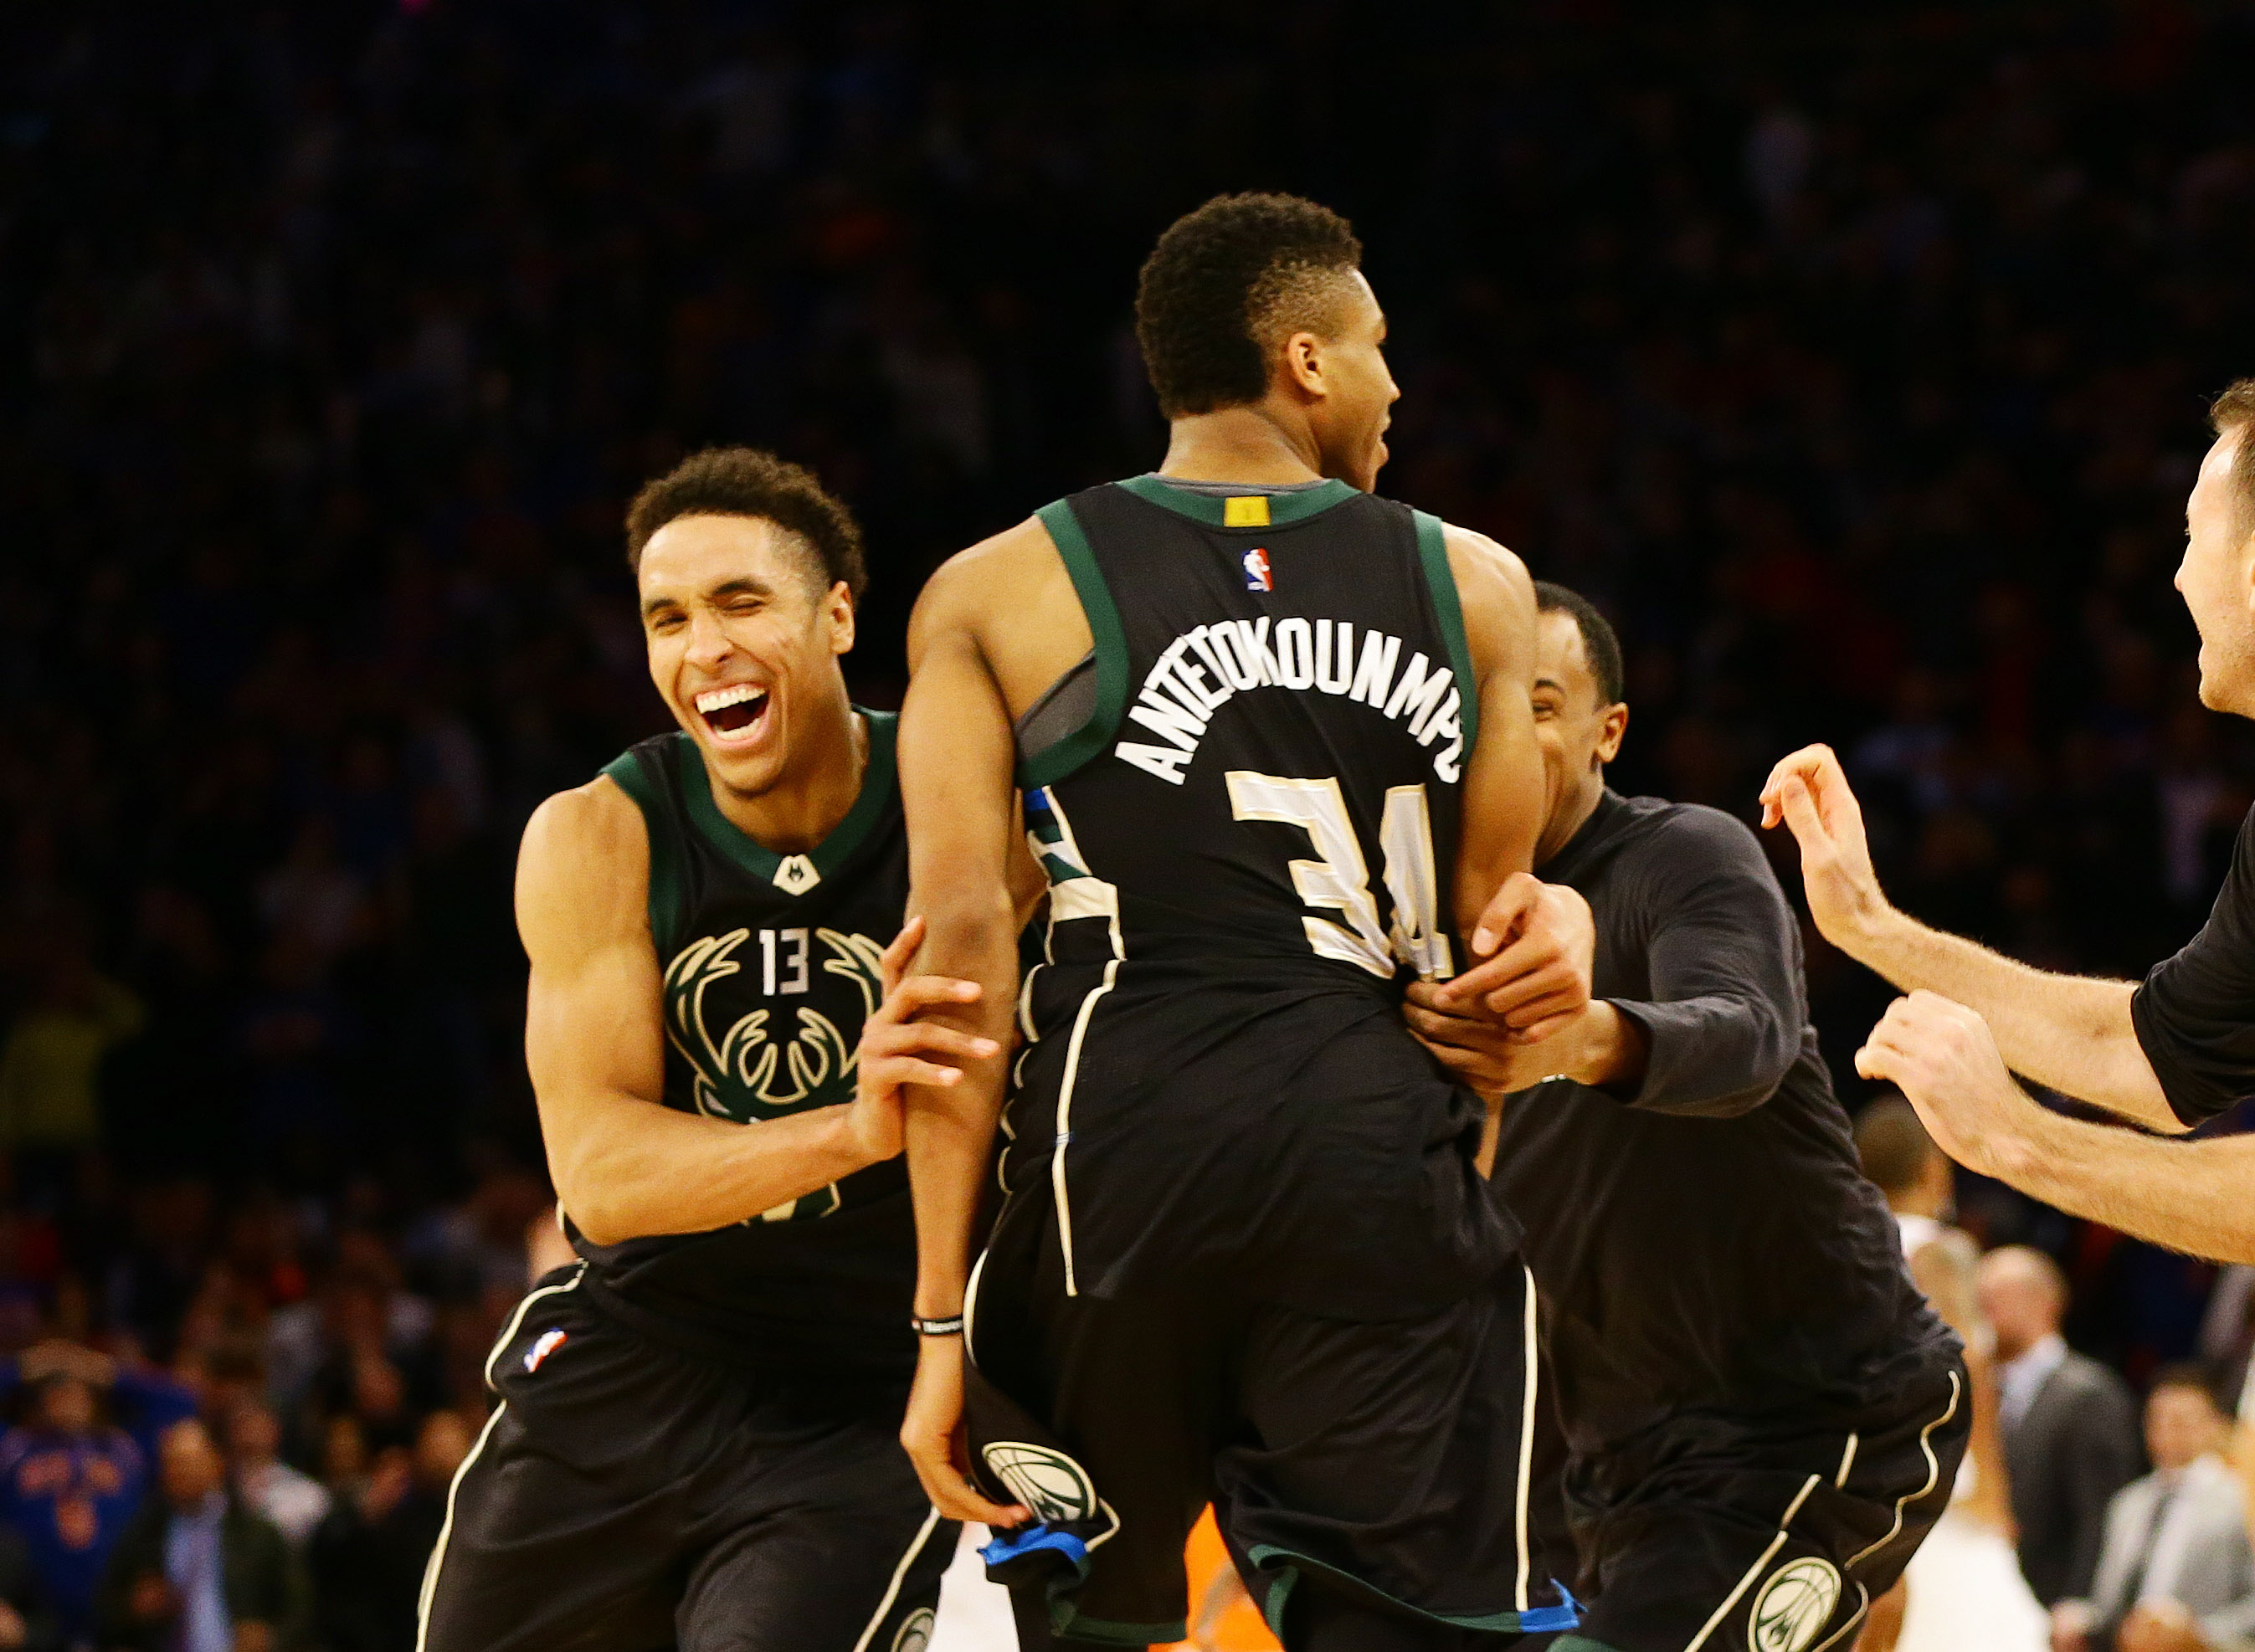 Jan 4, 2017; New York, NY, USA; Milwaukee Bucks forward Giannis Antetokounmpo (34) is congratulated by guard Malcolm Brogdon (13) after scoring the game winning basket at the buzzer against New York Knicks during the second half at Madison Square Garden. The Bucks won 105-104. Mandatory Credit: Andy Marlin-USA TODAY Sports